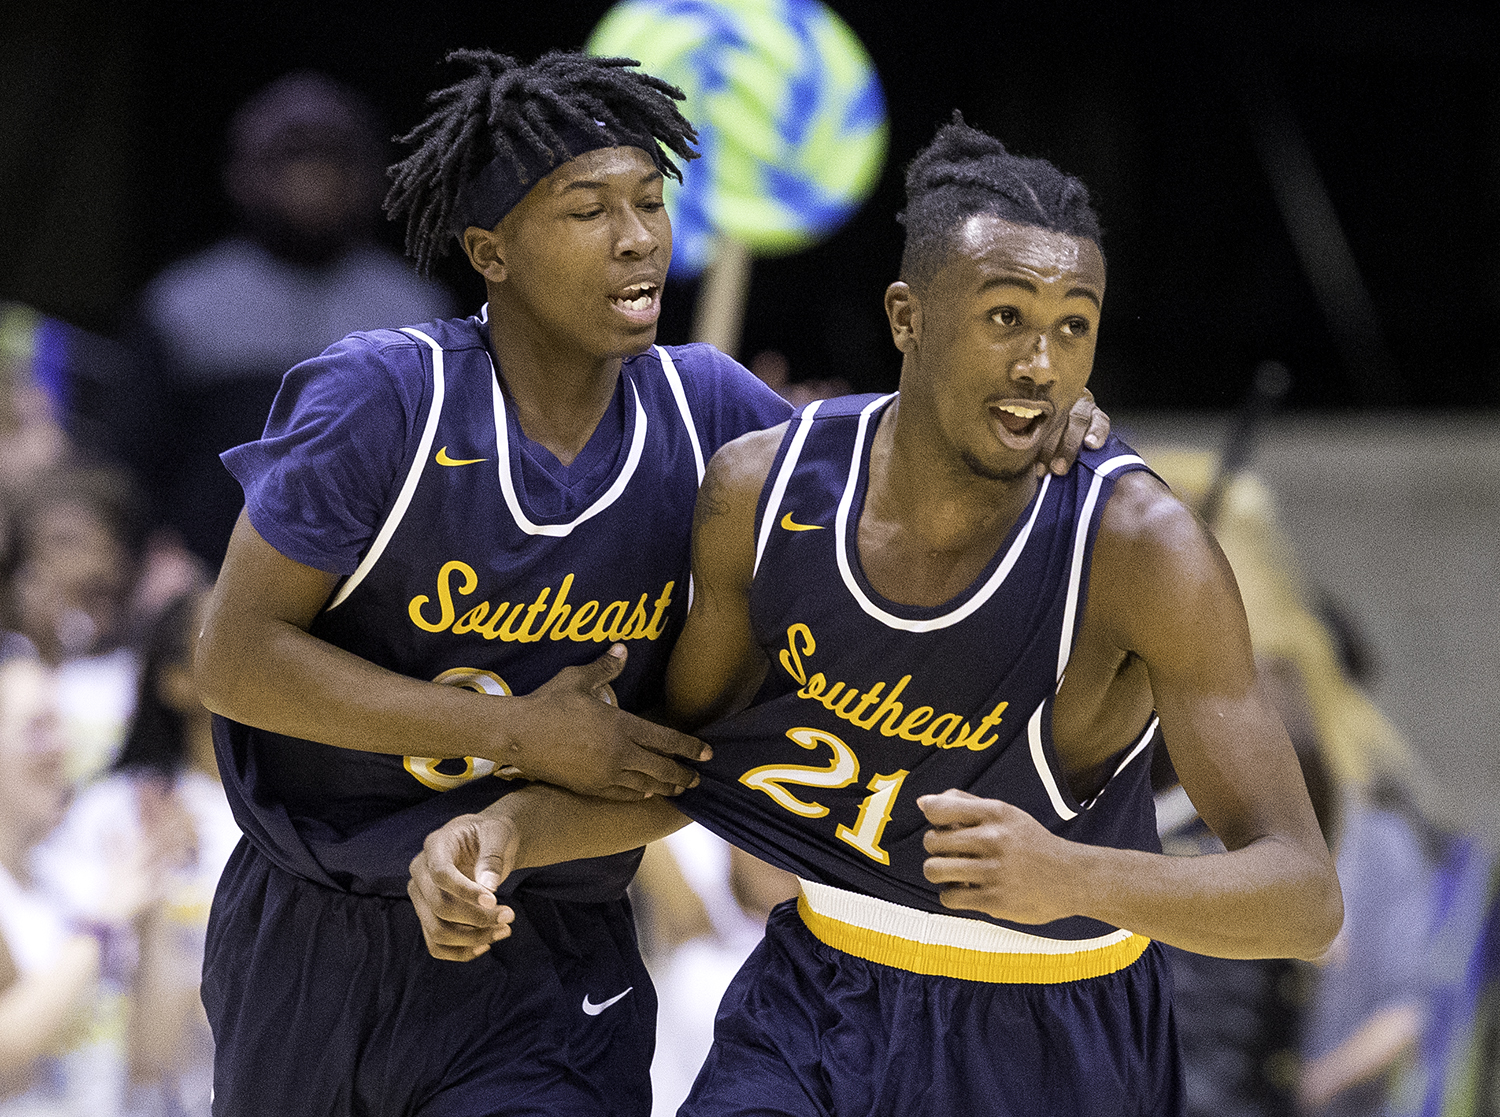 Southeast's Stephens Sims and Anthony Fairlee celebrate as they pull ahead of Springfield in the first half during the Boys City Tournament at the Bank of Springfield Center Friday, Jan. 19, 2018. [Ted Schurter/The State Journal-Register]